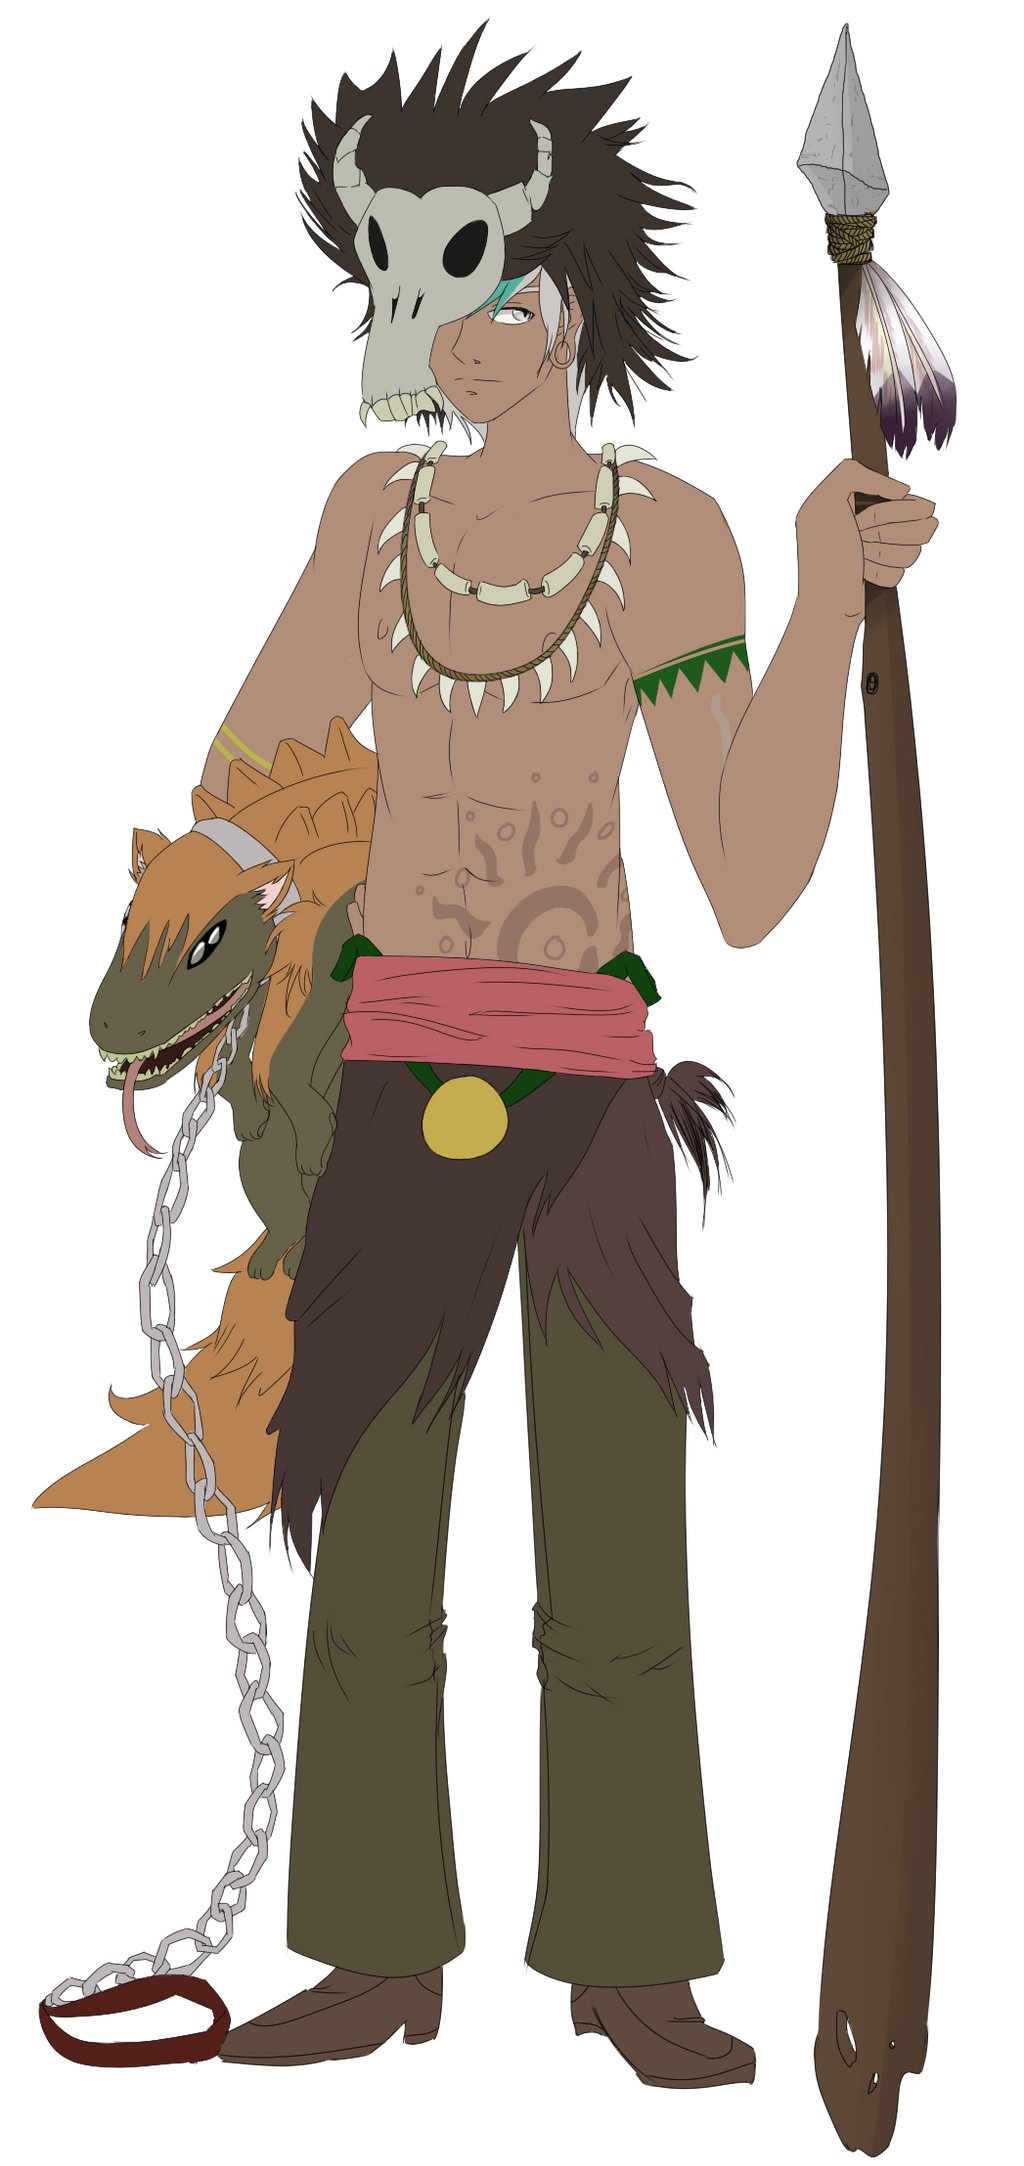 Character Design Contest 2014 : Boiledhard contest character design by azeixal on deviantart